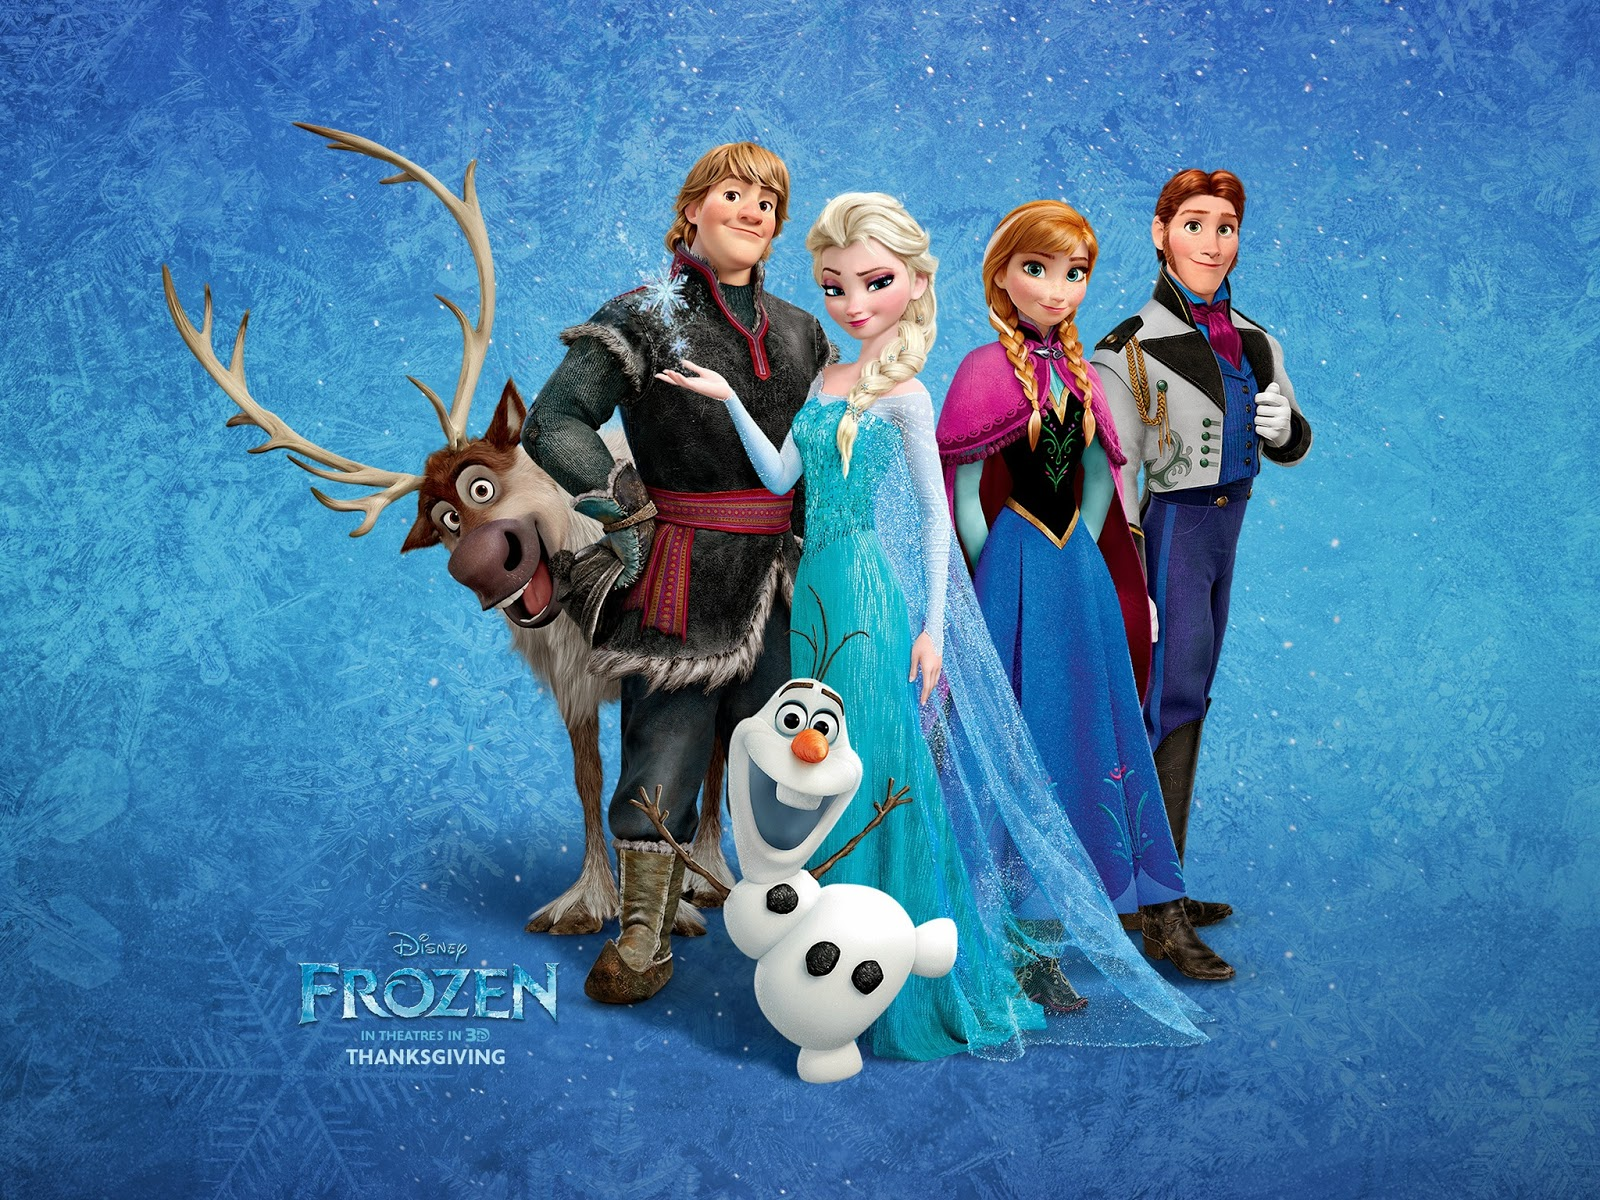 frozen free online full movie//disney